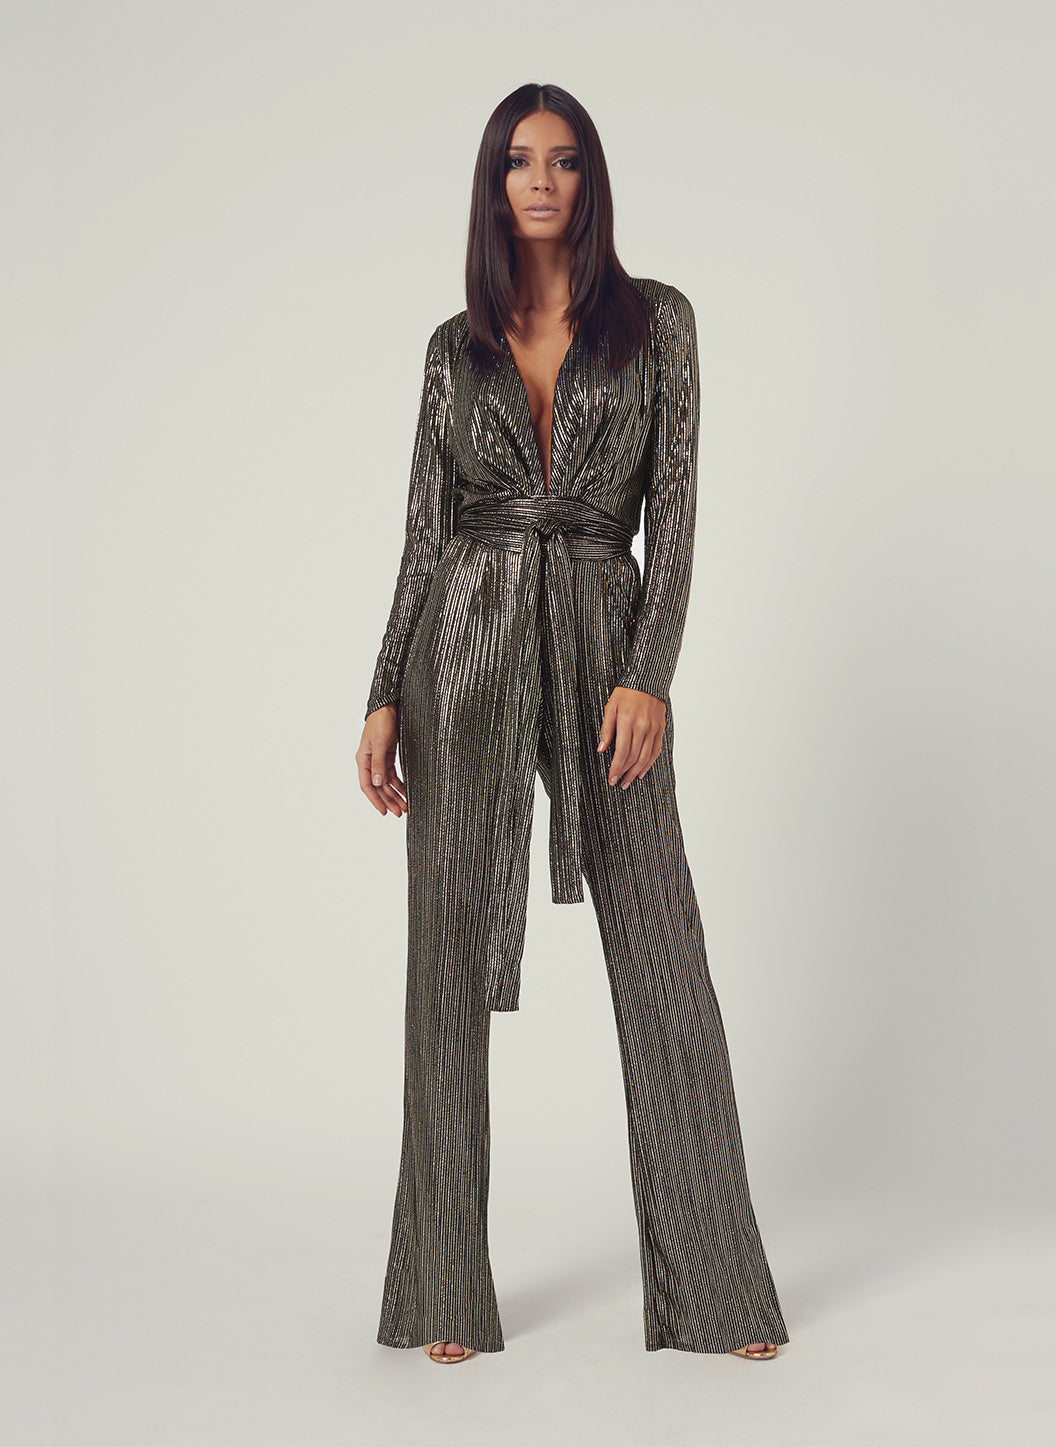 Look 4 Deep V Belted Jumpsuit Gold Stripe - Melissa Odabash Jumpsuits